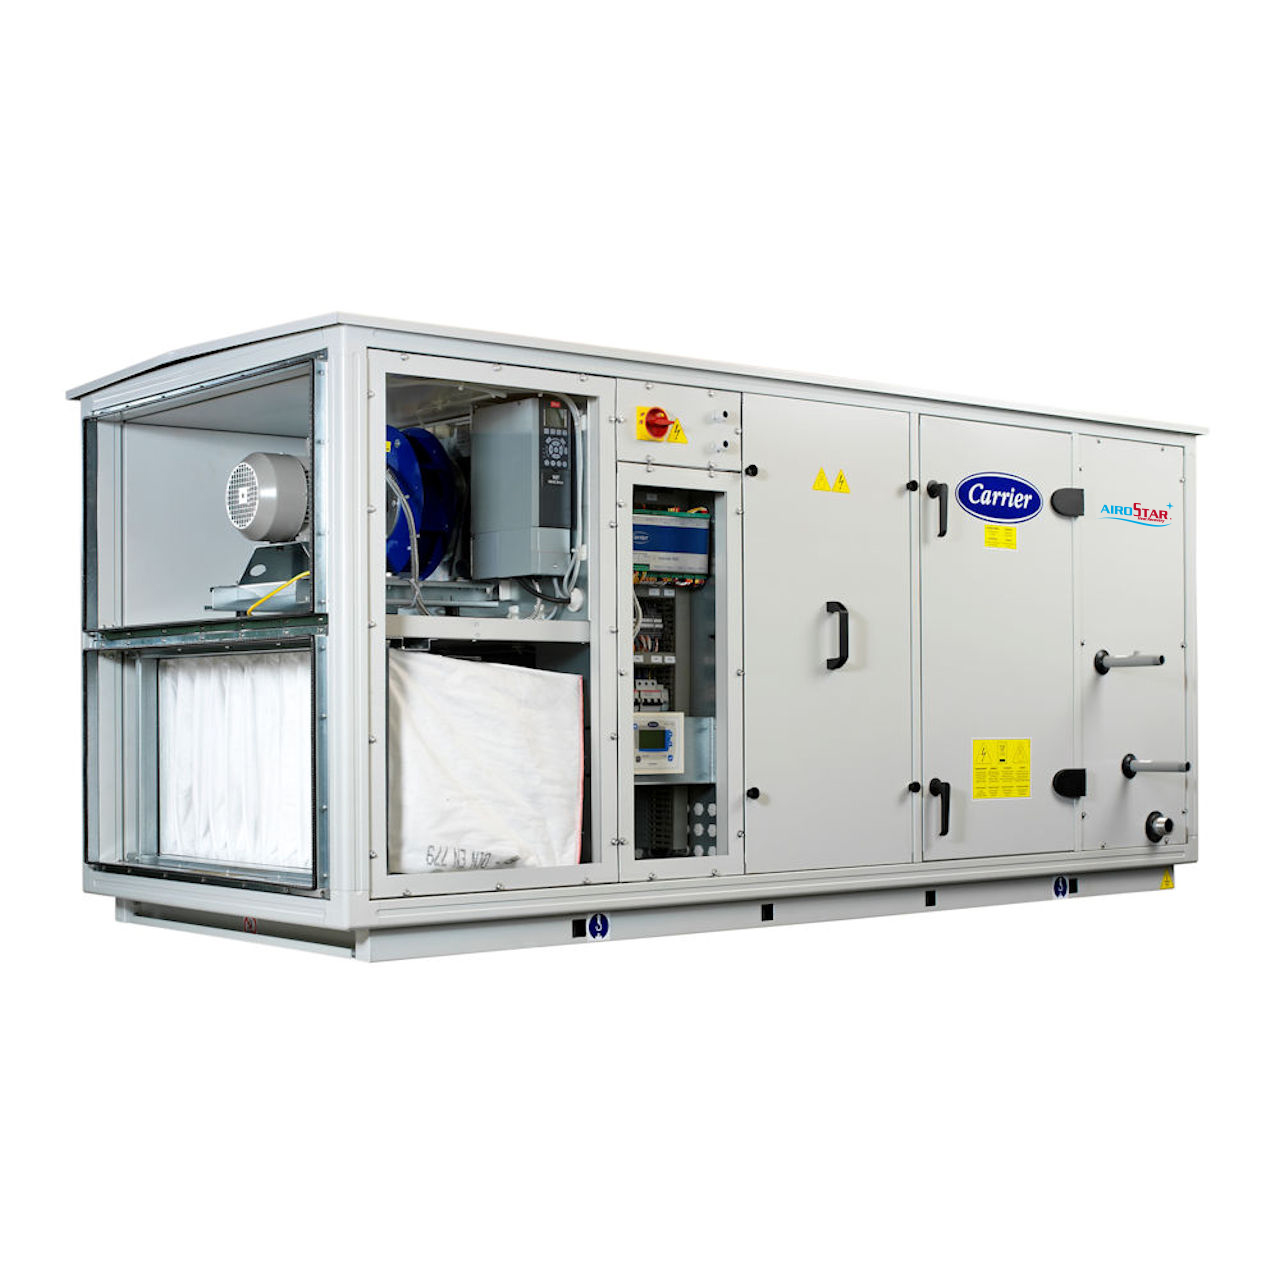 carrier-39SQ-air-handling-unit-multibloc